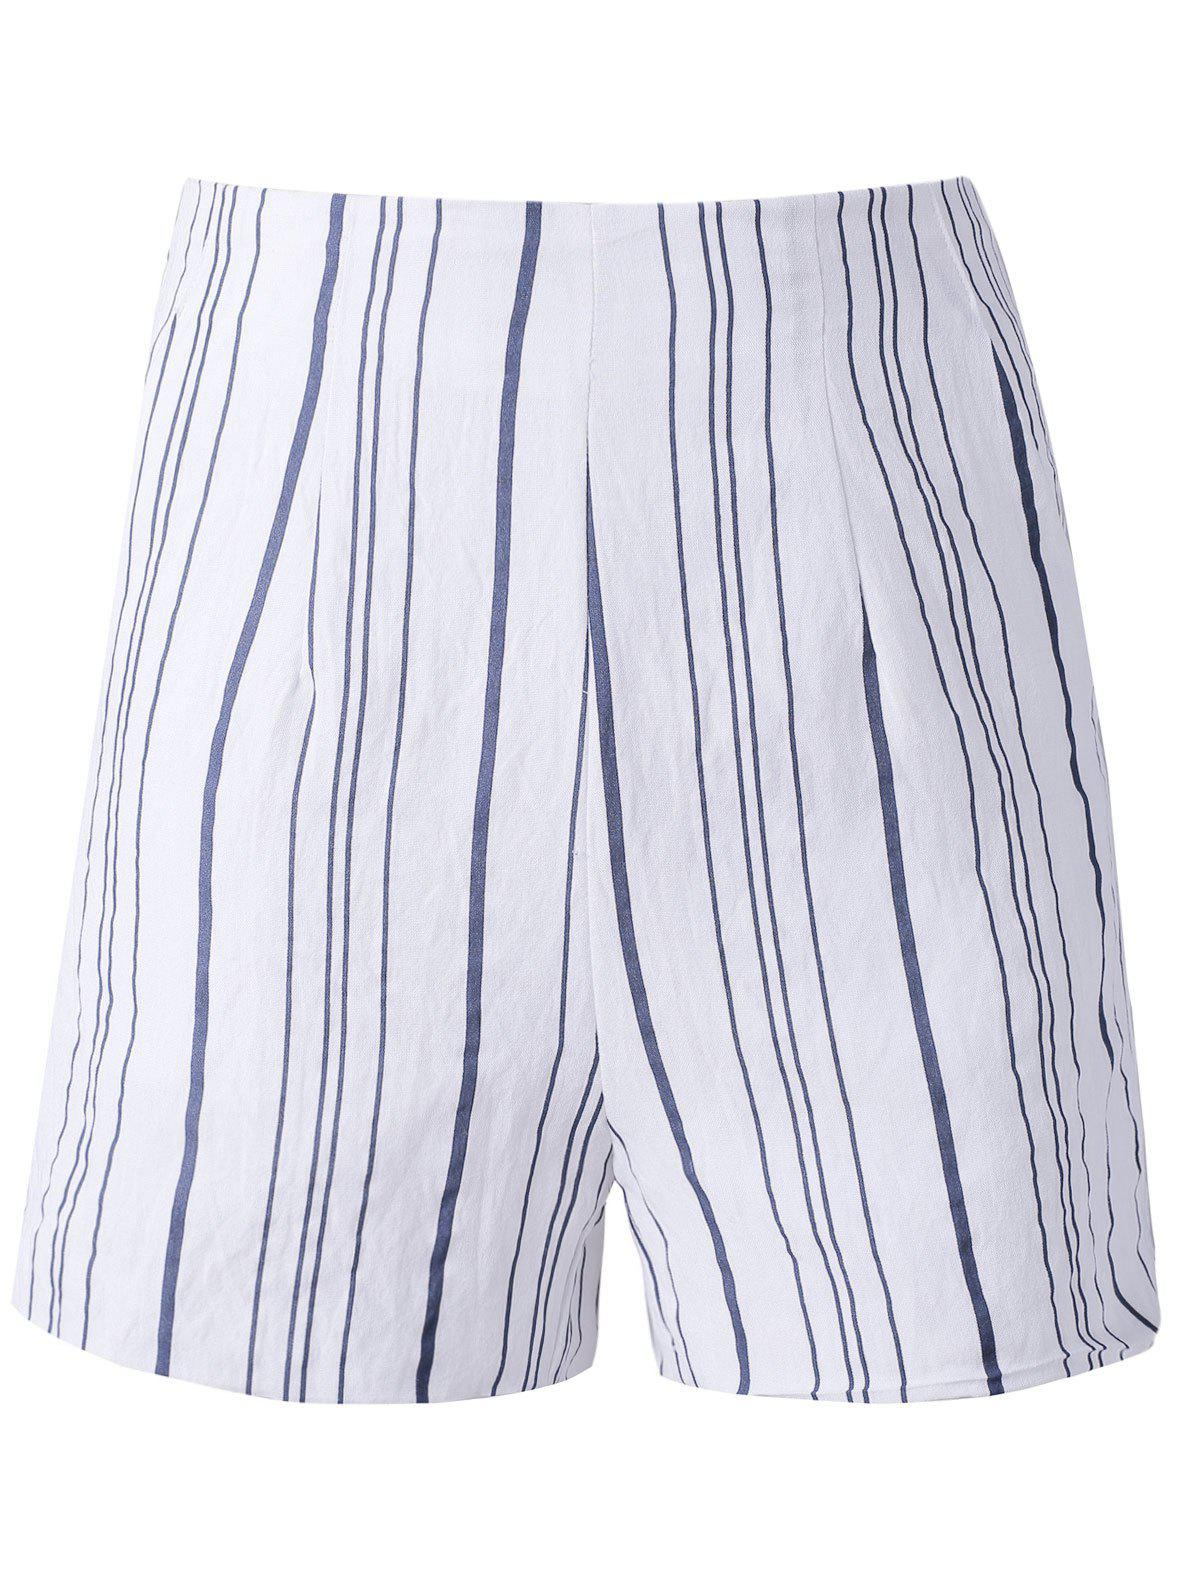 Fashion Woman's Irregular Stripe High Waist Shorts - COLORMIX L